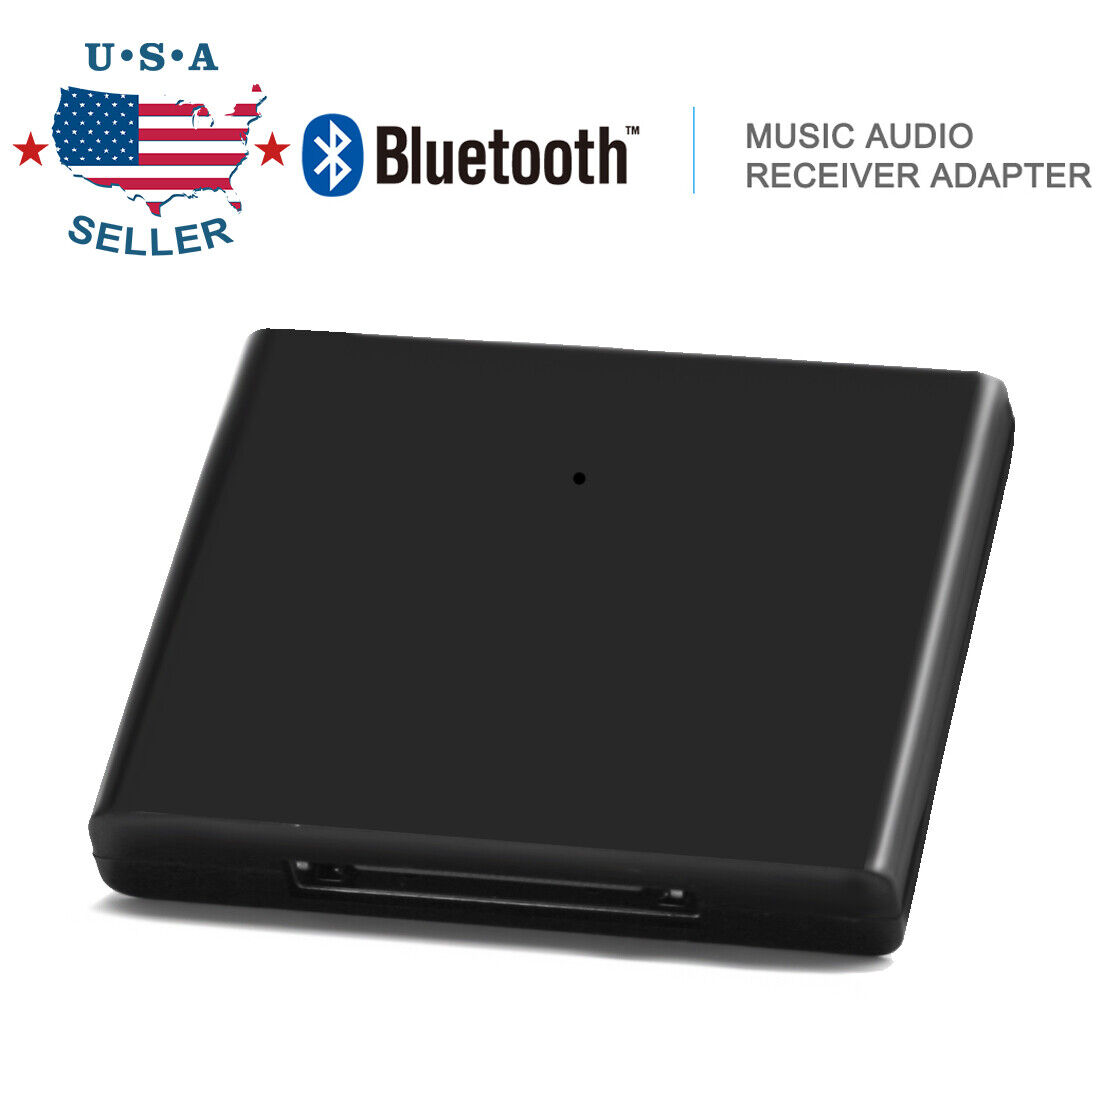 Bluetooth Music Audio Receiver Adapter For iPod iPhone 30 Pi